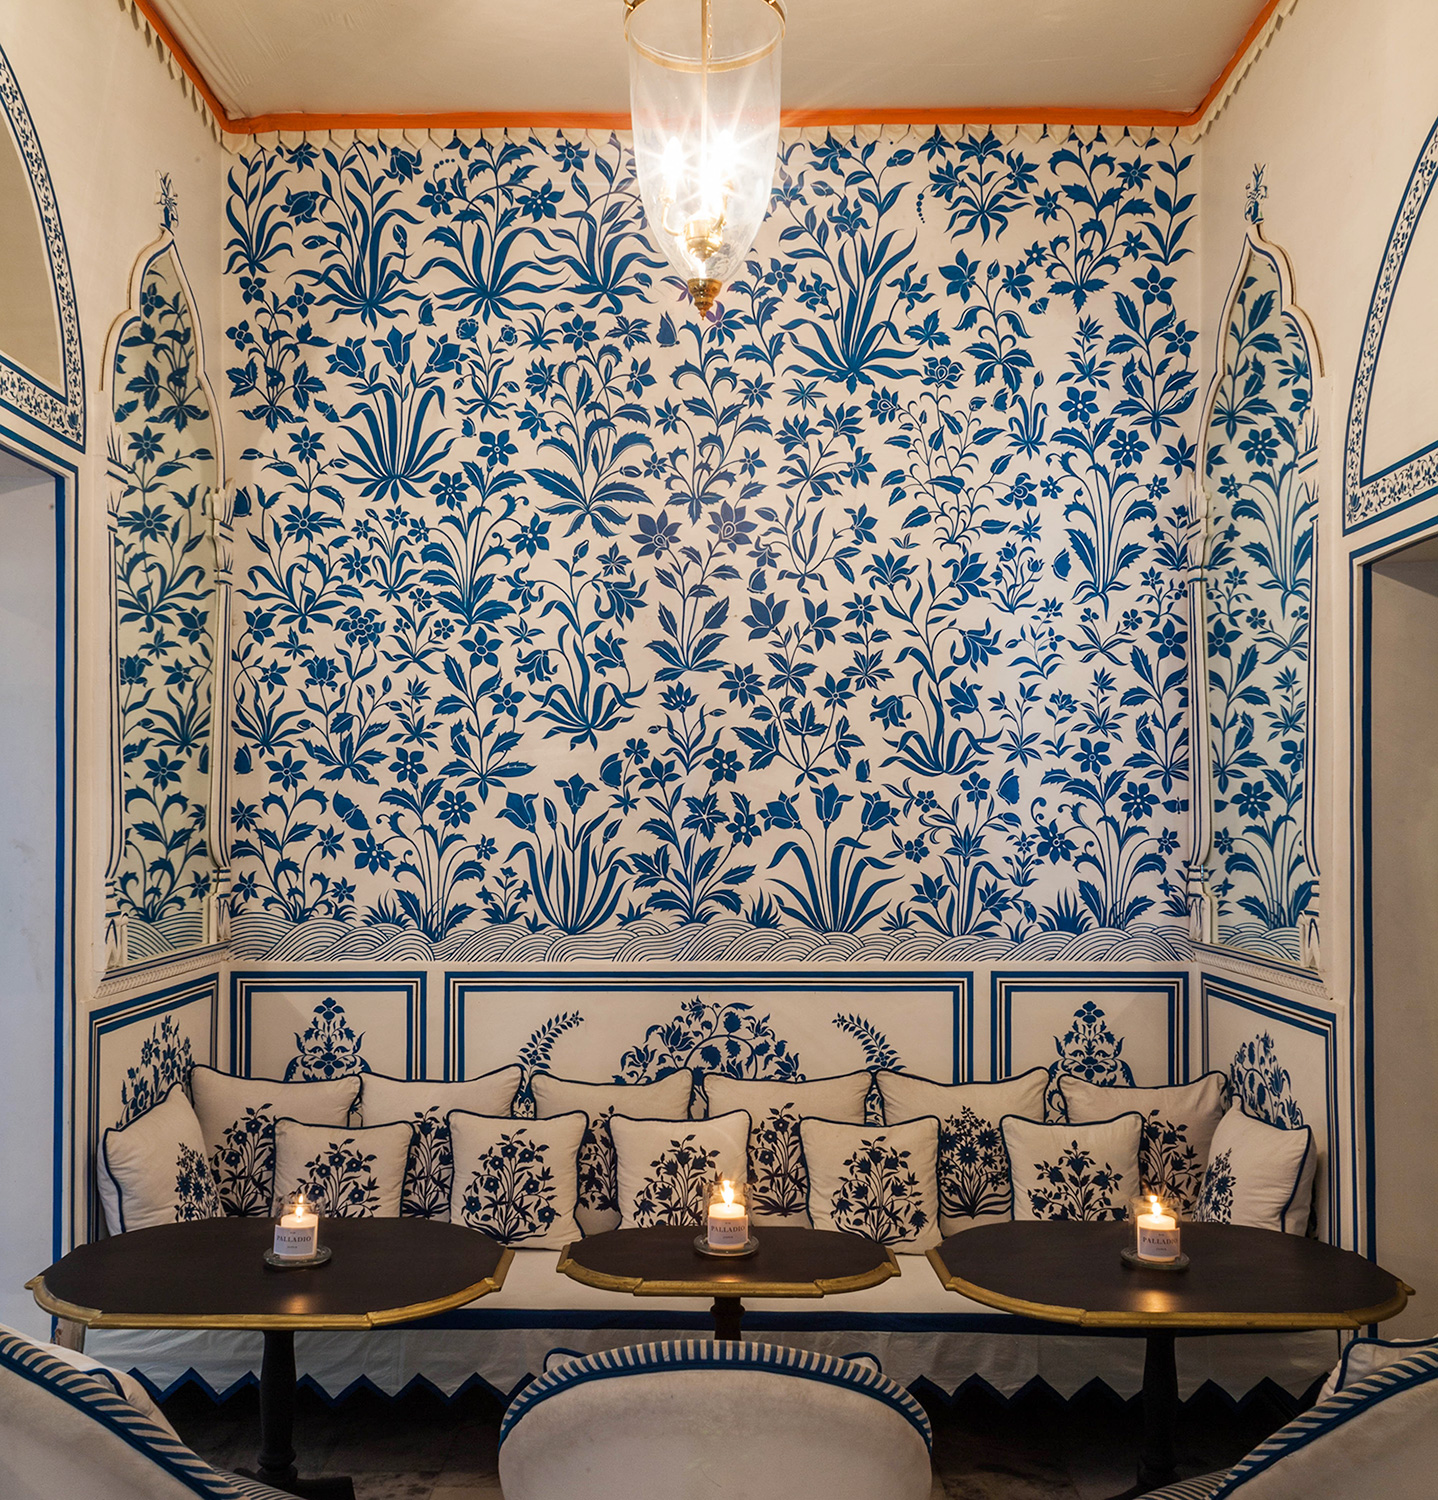 "Bar Palladio - ""White Room"" blue and white floral hideaway"